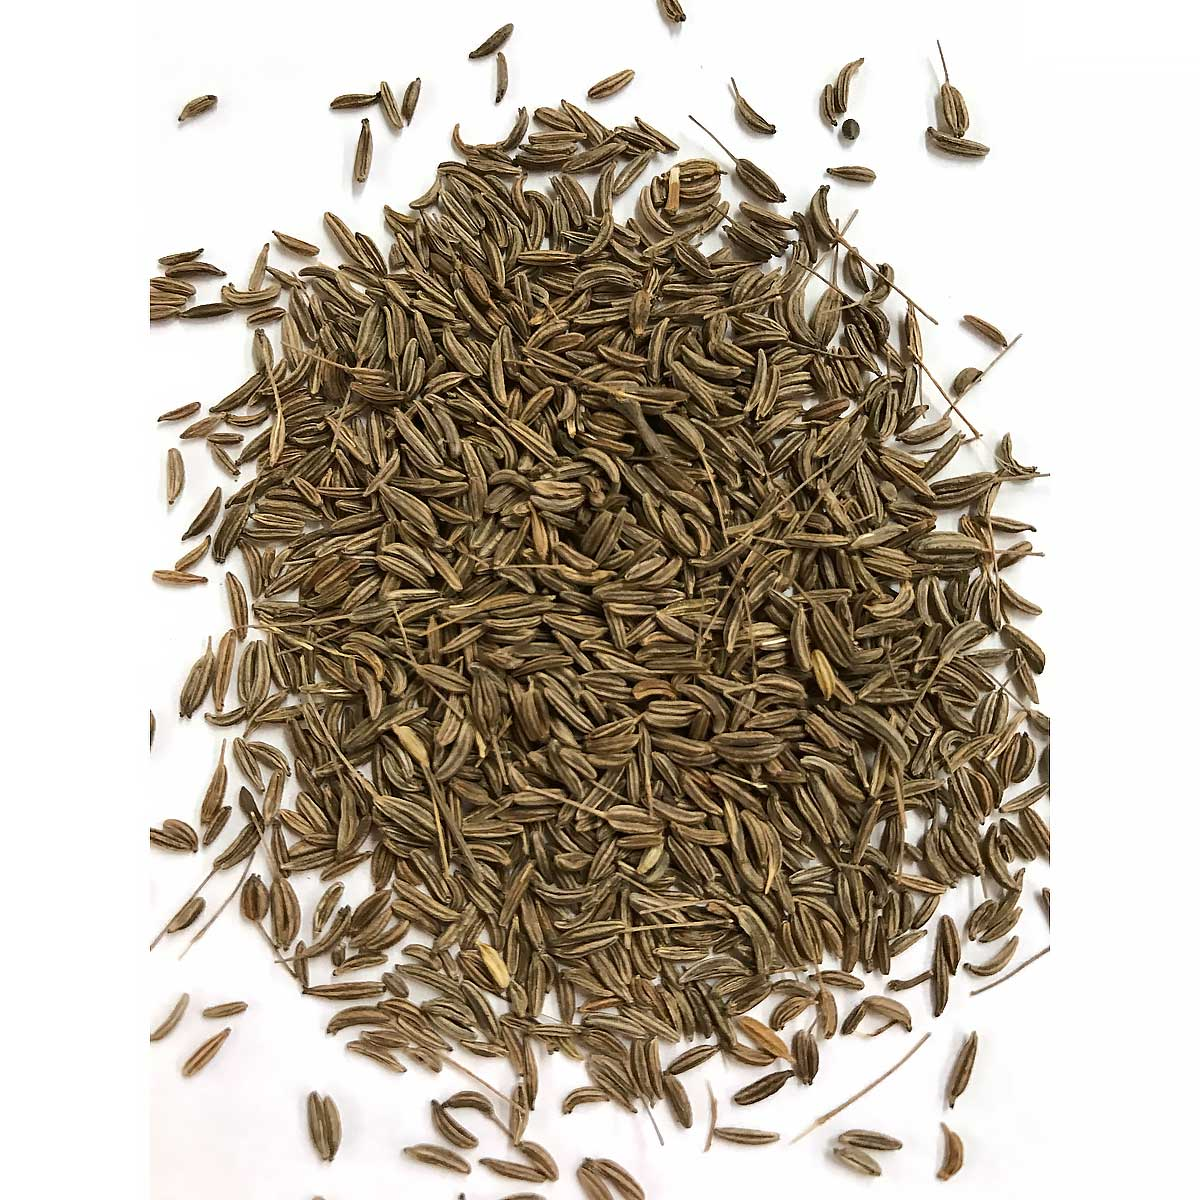 How to Use Caraway Seeds How to Use Caraway Seeds new images